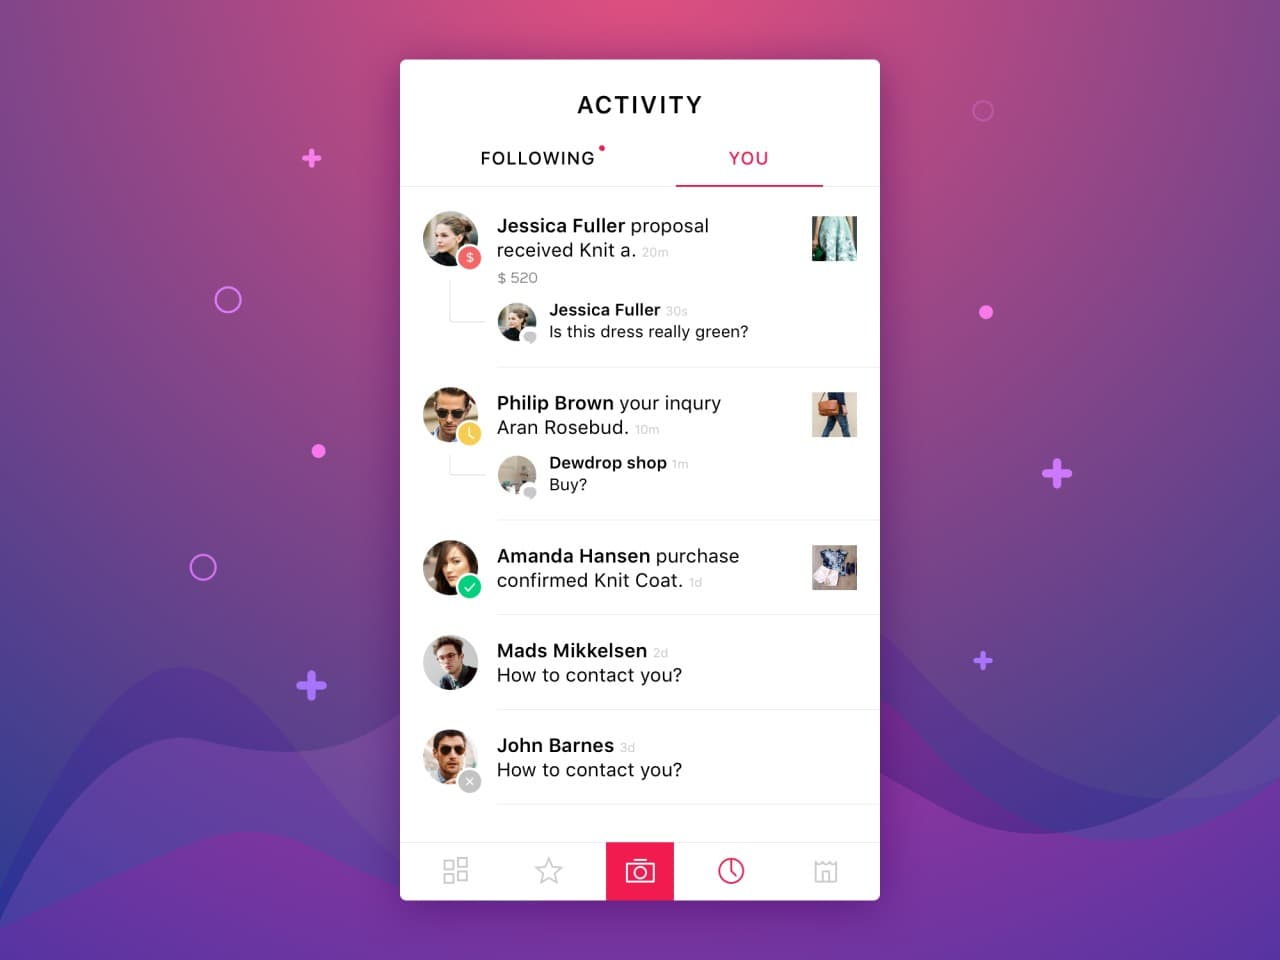 Beautiful activity screen #ui #inspiration #interface #ios #design #iphone